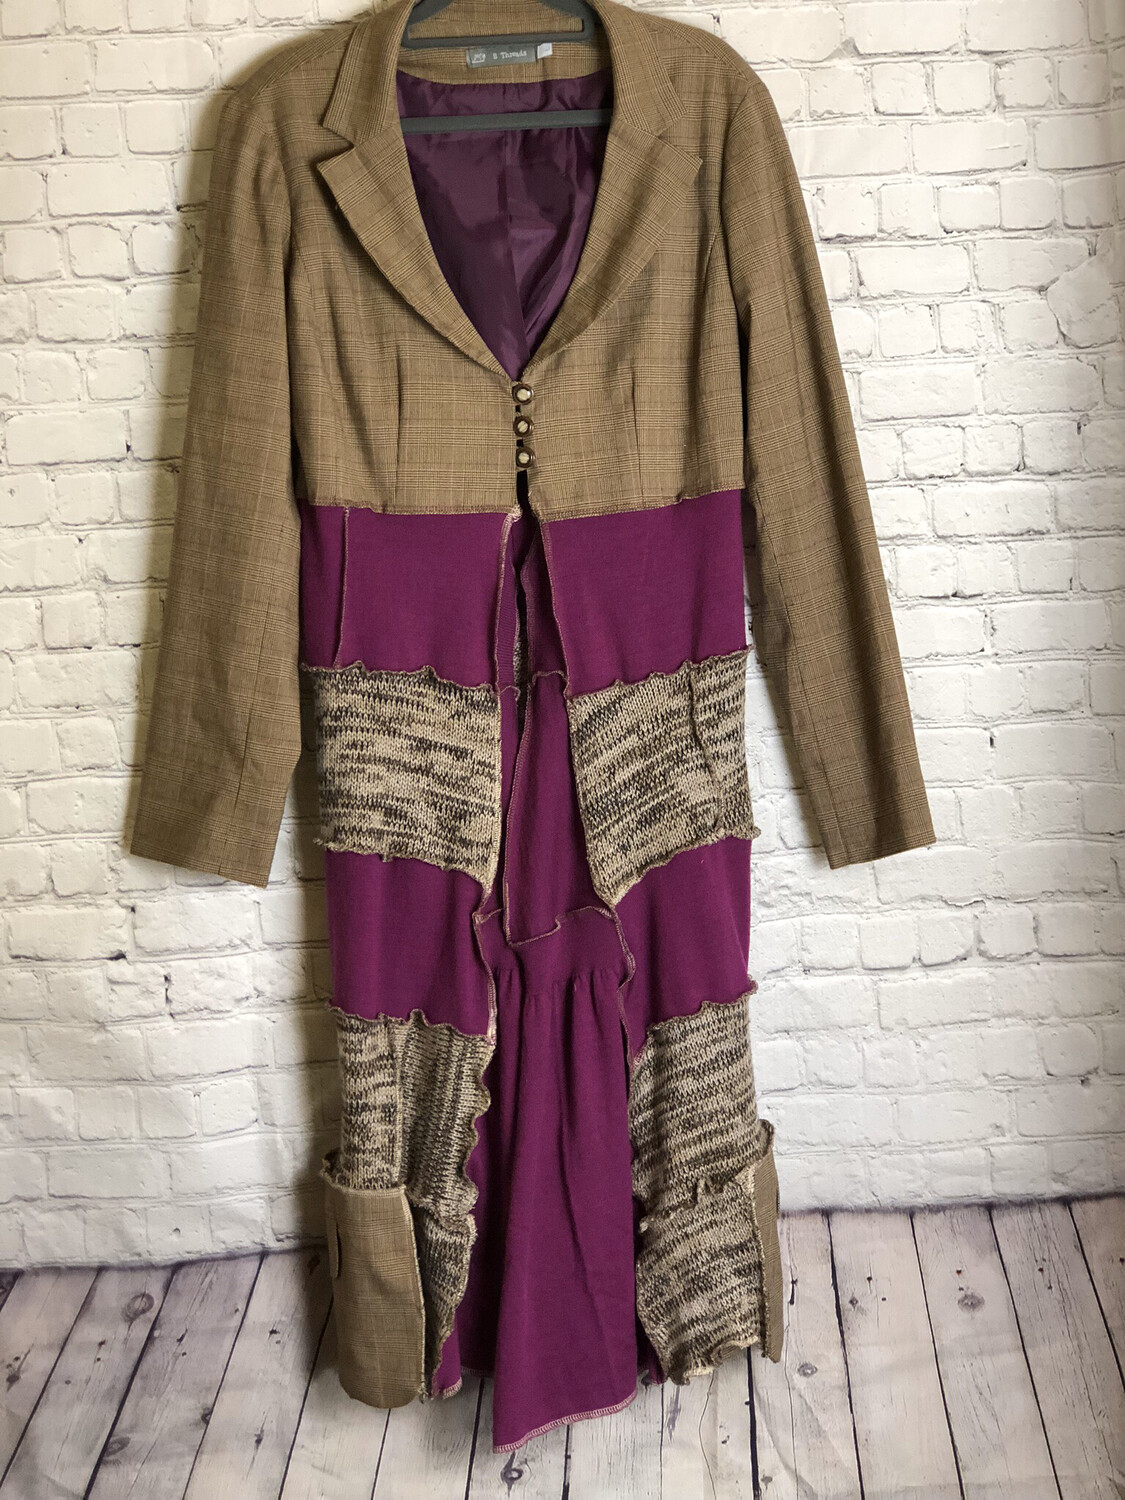 Jayer AKA Jacket With Layers In Browns Purples